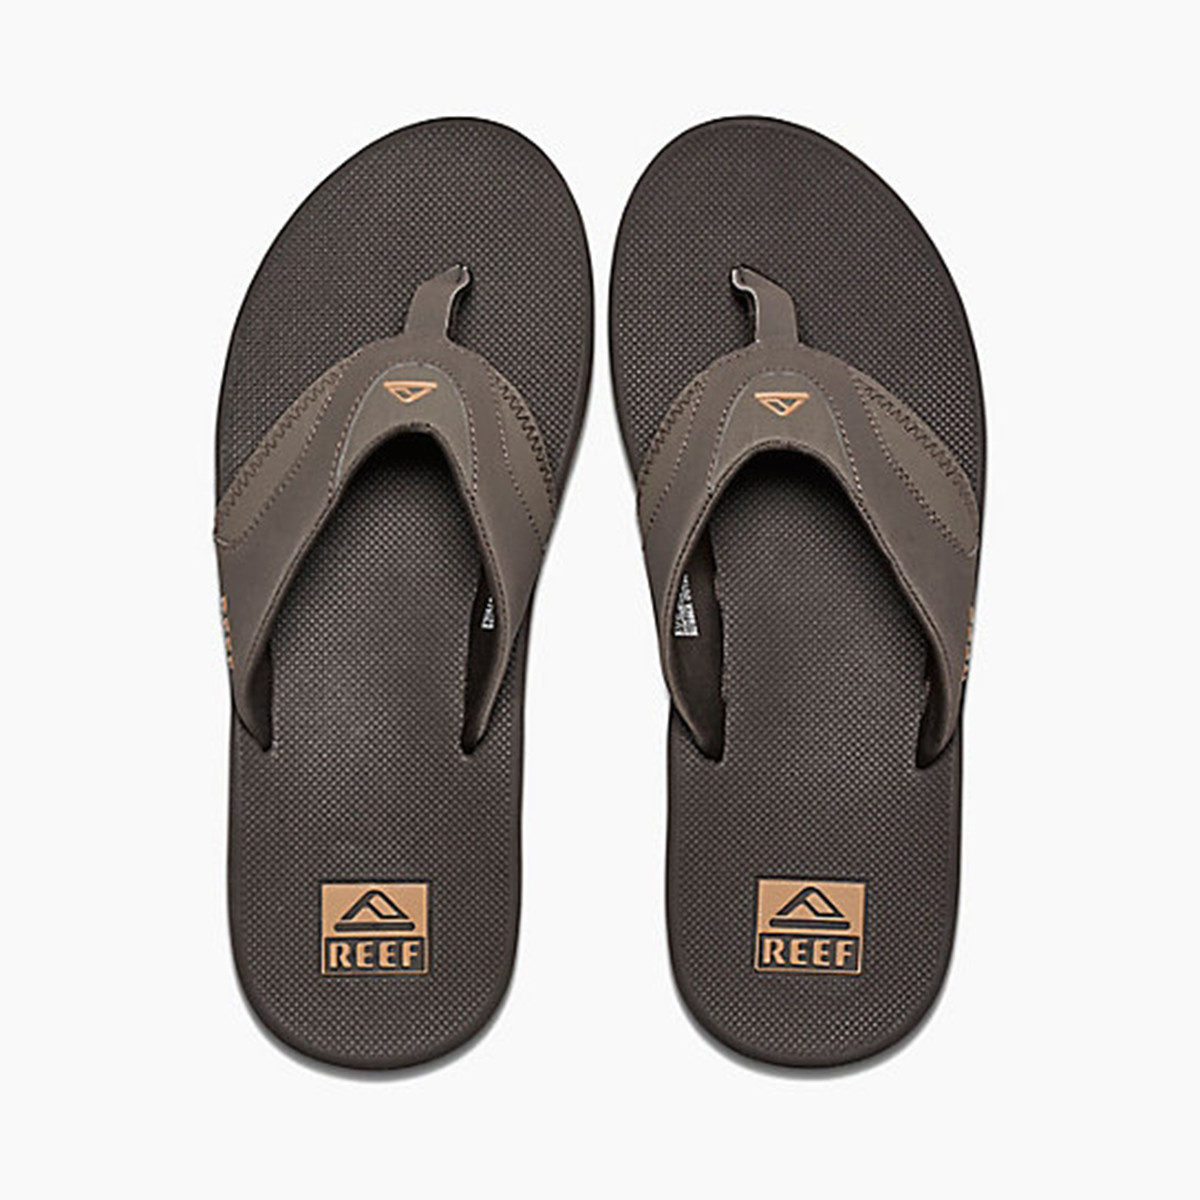 9bb64ab9326b Reef Sandals Fanning Flip Flops Men s Brown Gum RF002026 BGM. Price    54.95. Image 1